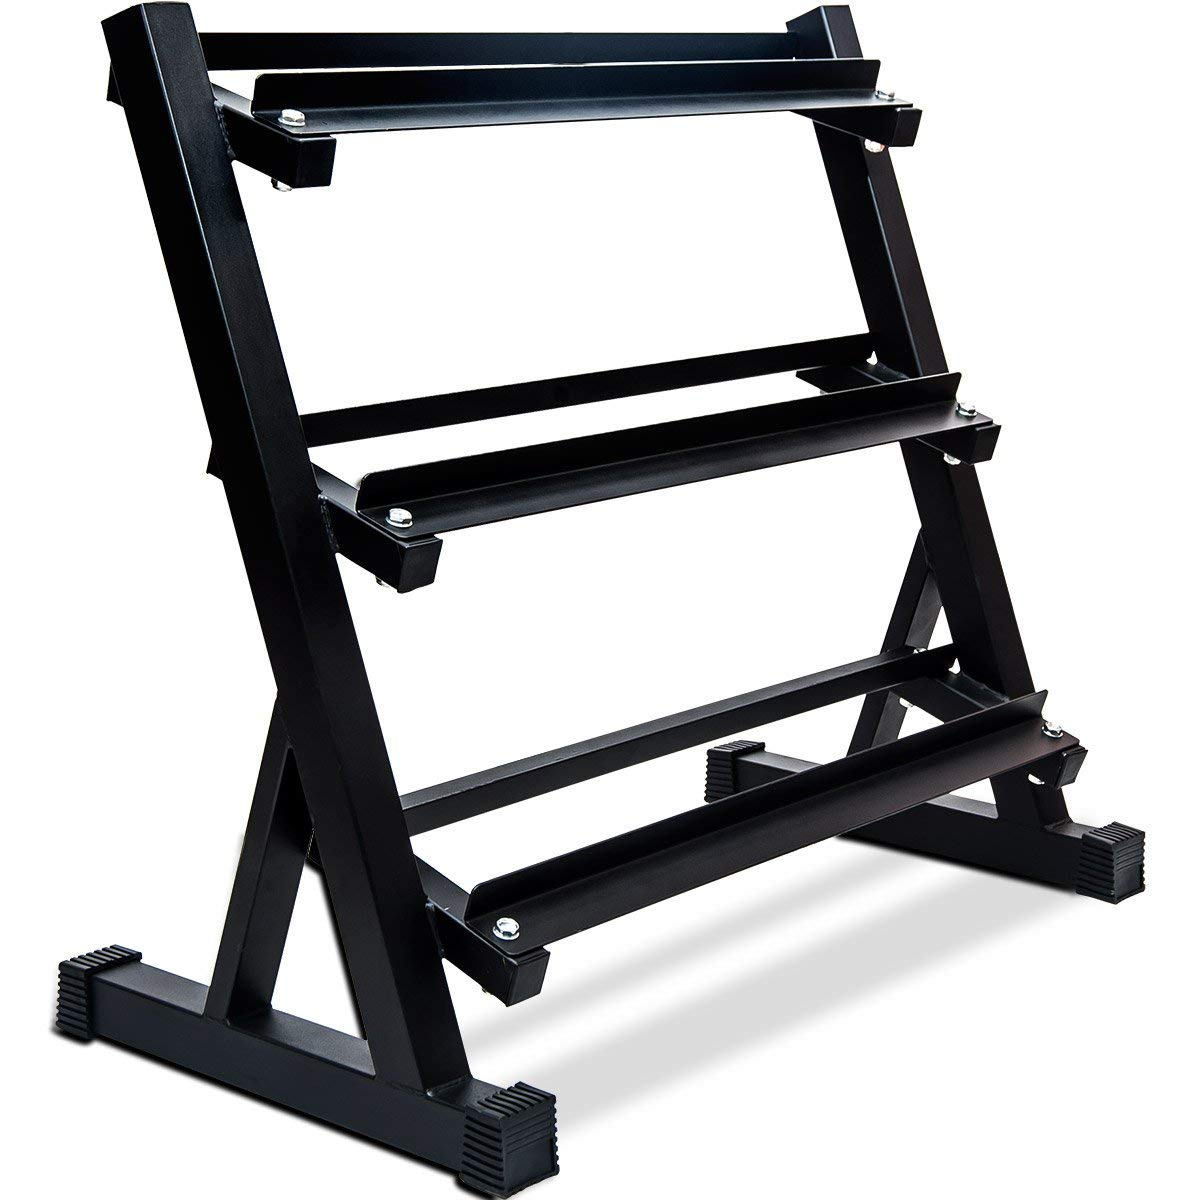 Merax 3 Tier Heavy-Duty Dumbbell Rack 800 LBS Weight Capacity